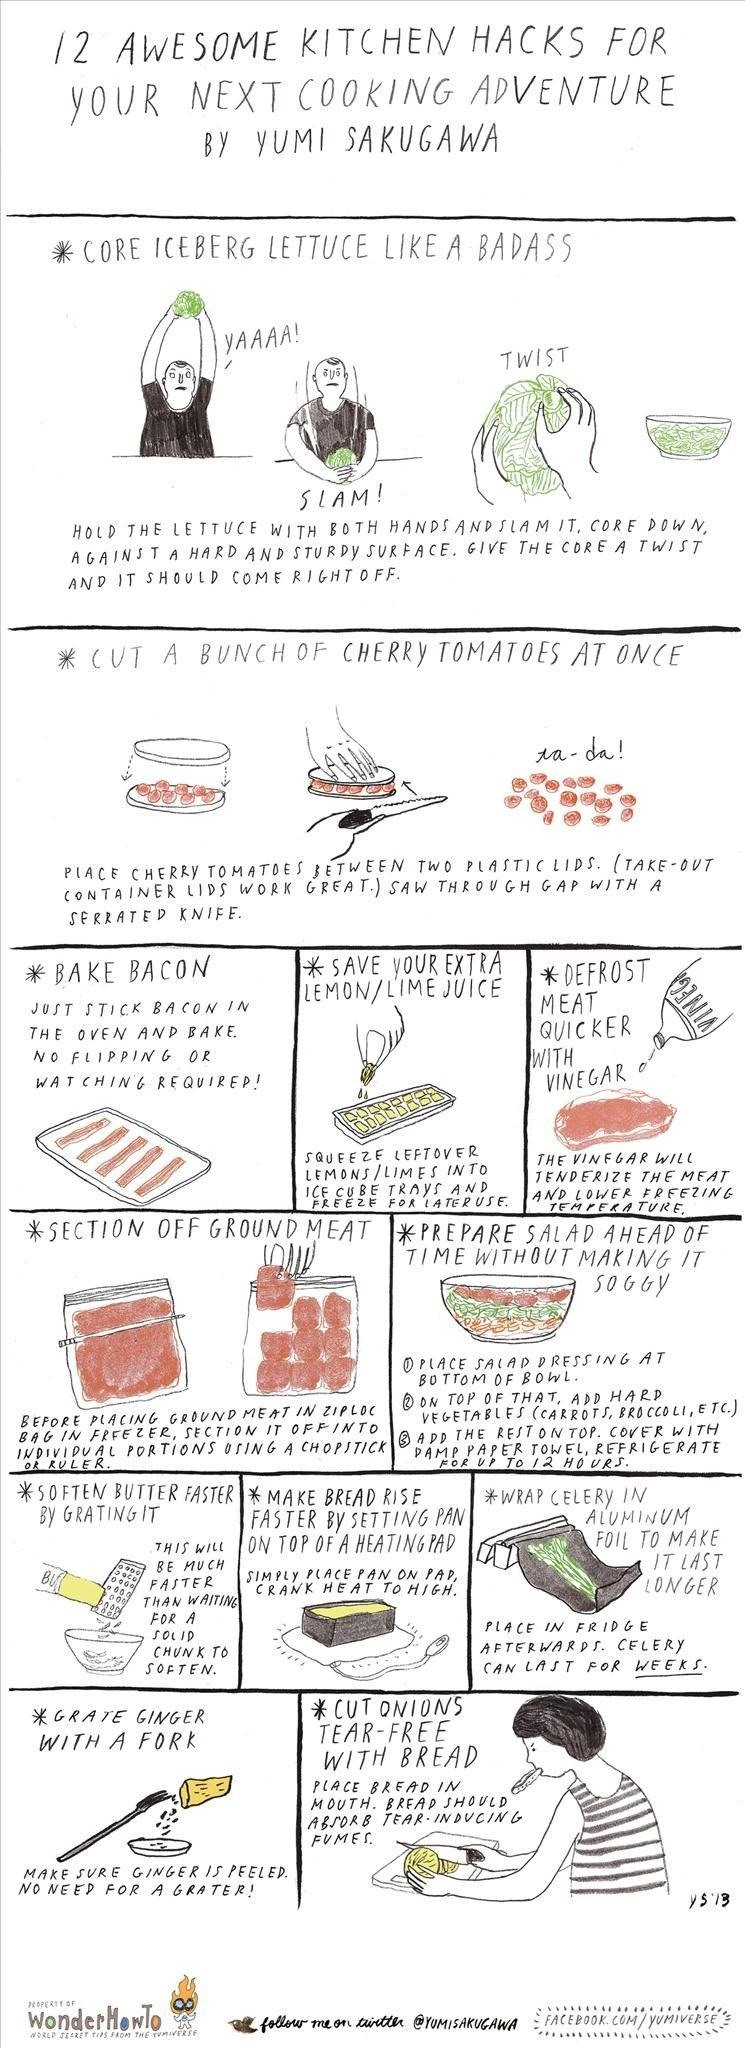 12 Awesome Kitchen Hacks for Your Next Cooking Adventure